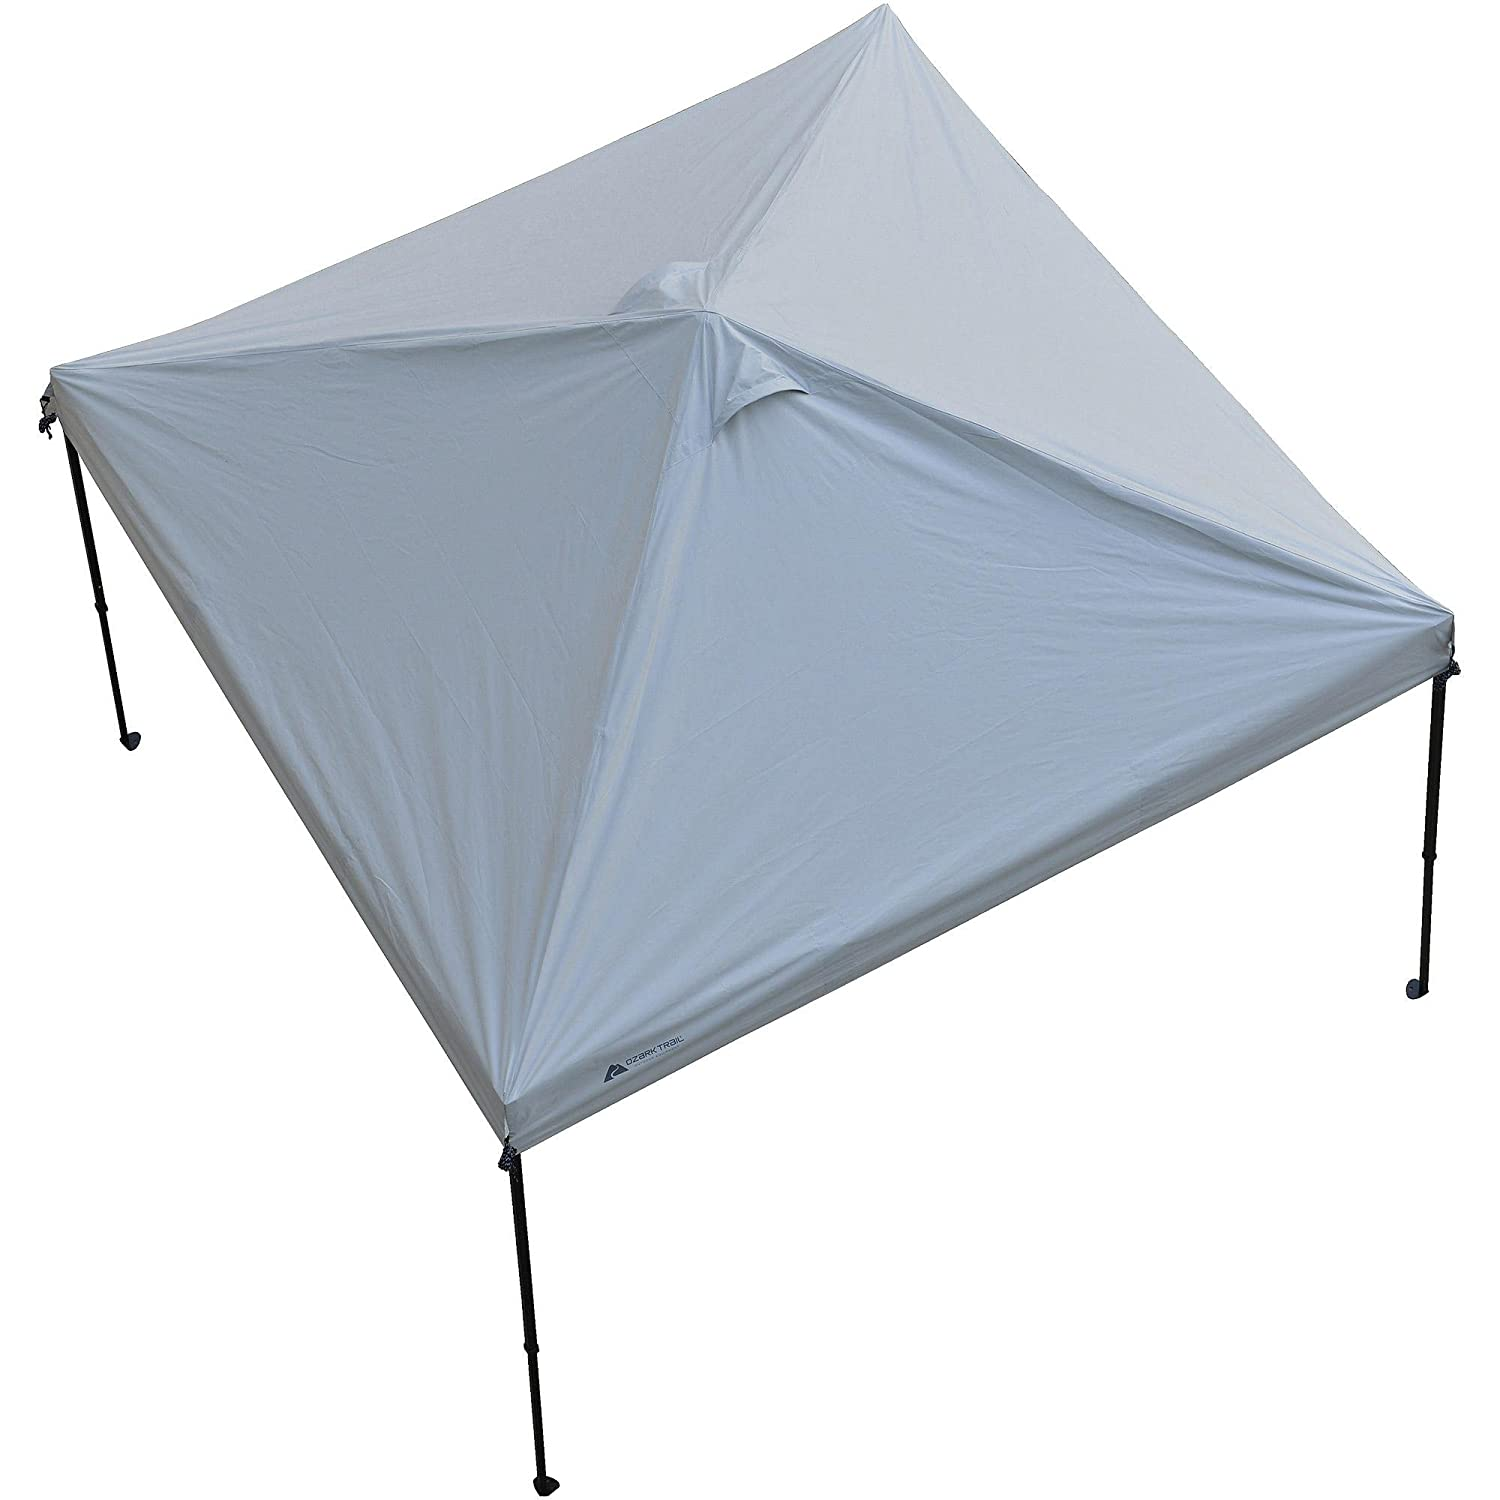 Amazon.com Ozark Trail 10ft x 10ft Gazebo Top (replacement top only Canopy frame not included) Garden u0026 Outdoor  sc 1 st  Amazon.com : canopy frame - memphite.com